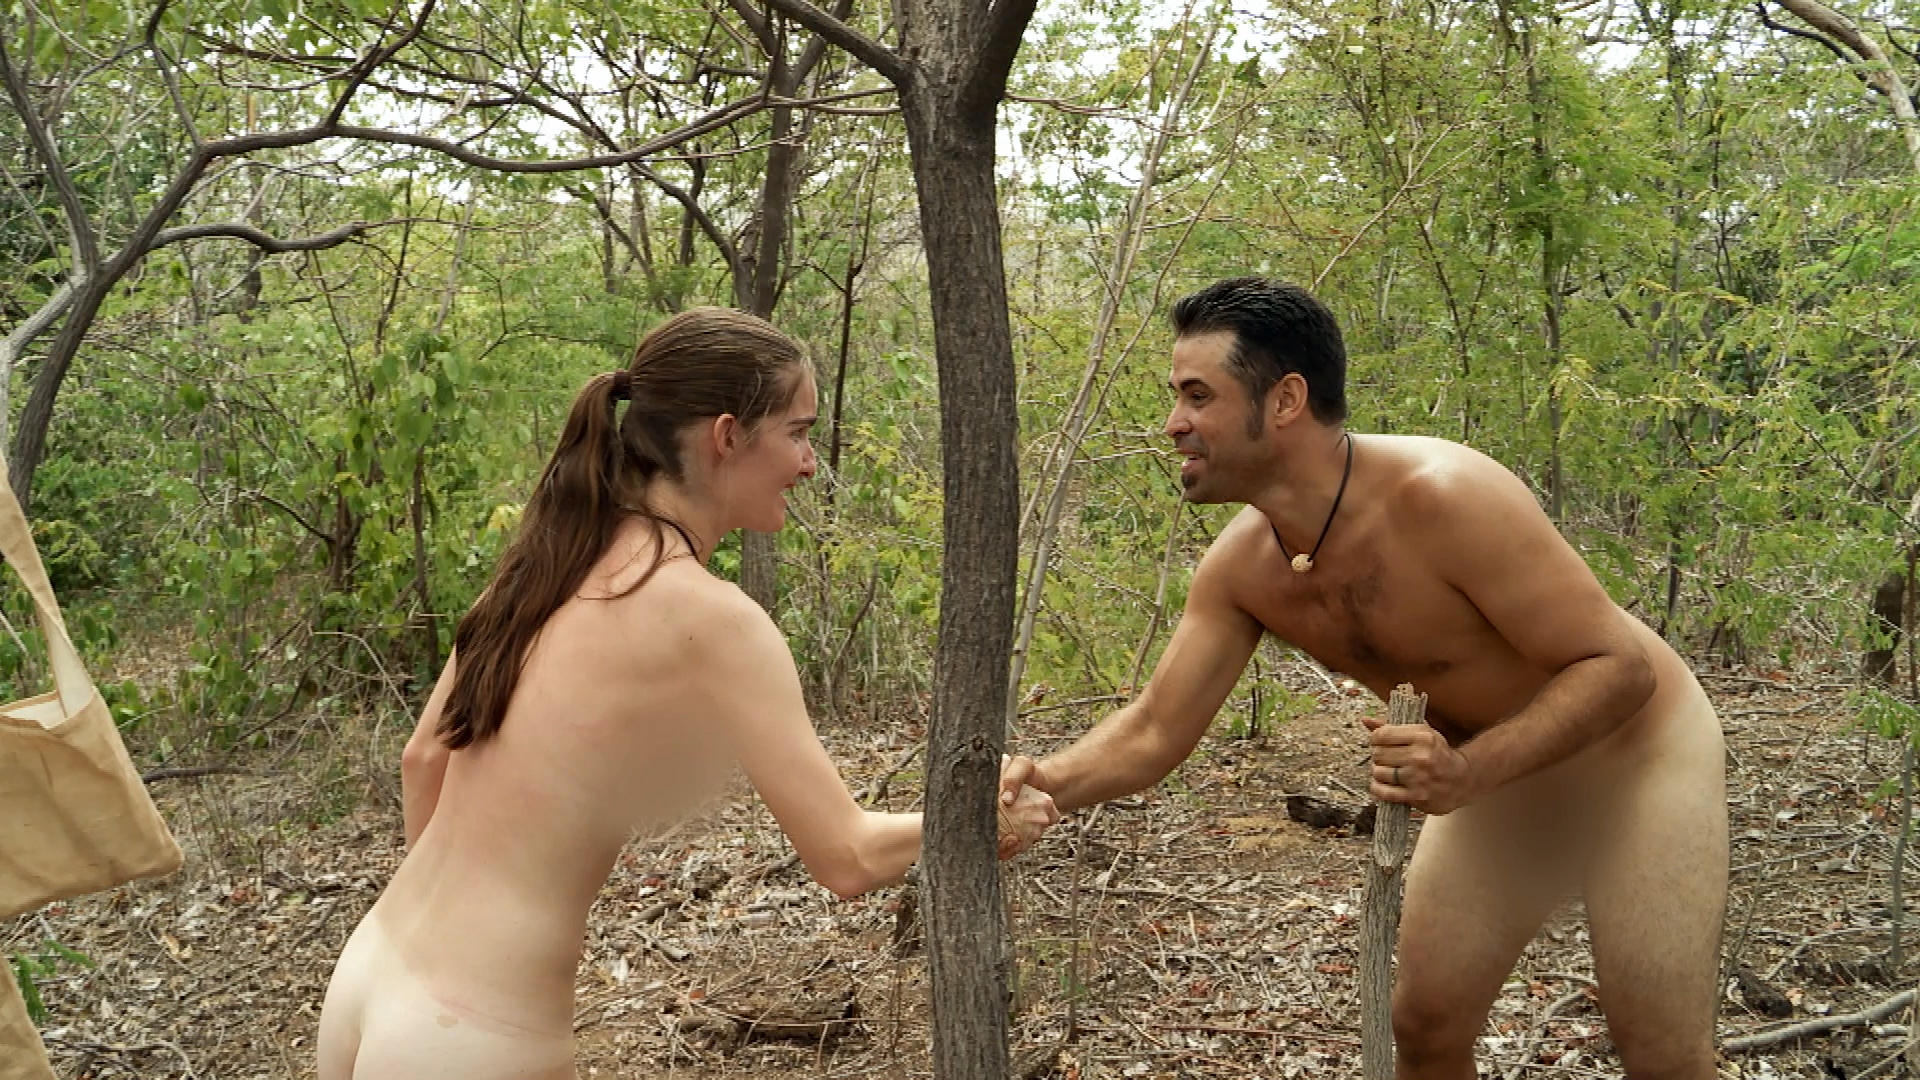 naked and afraid sex scene